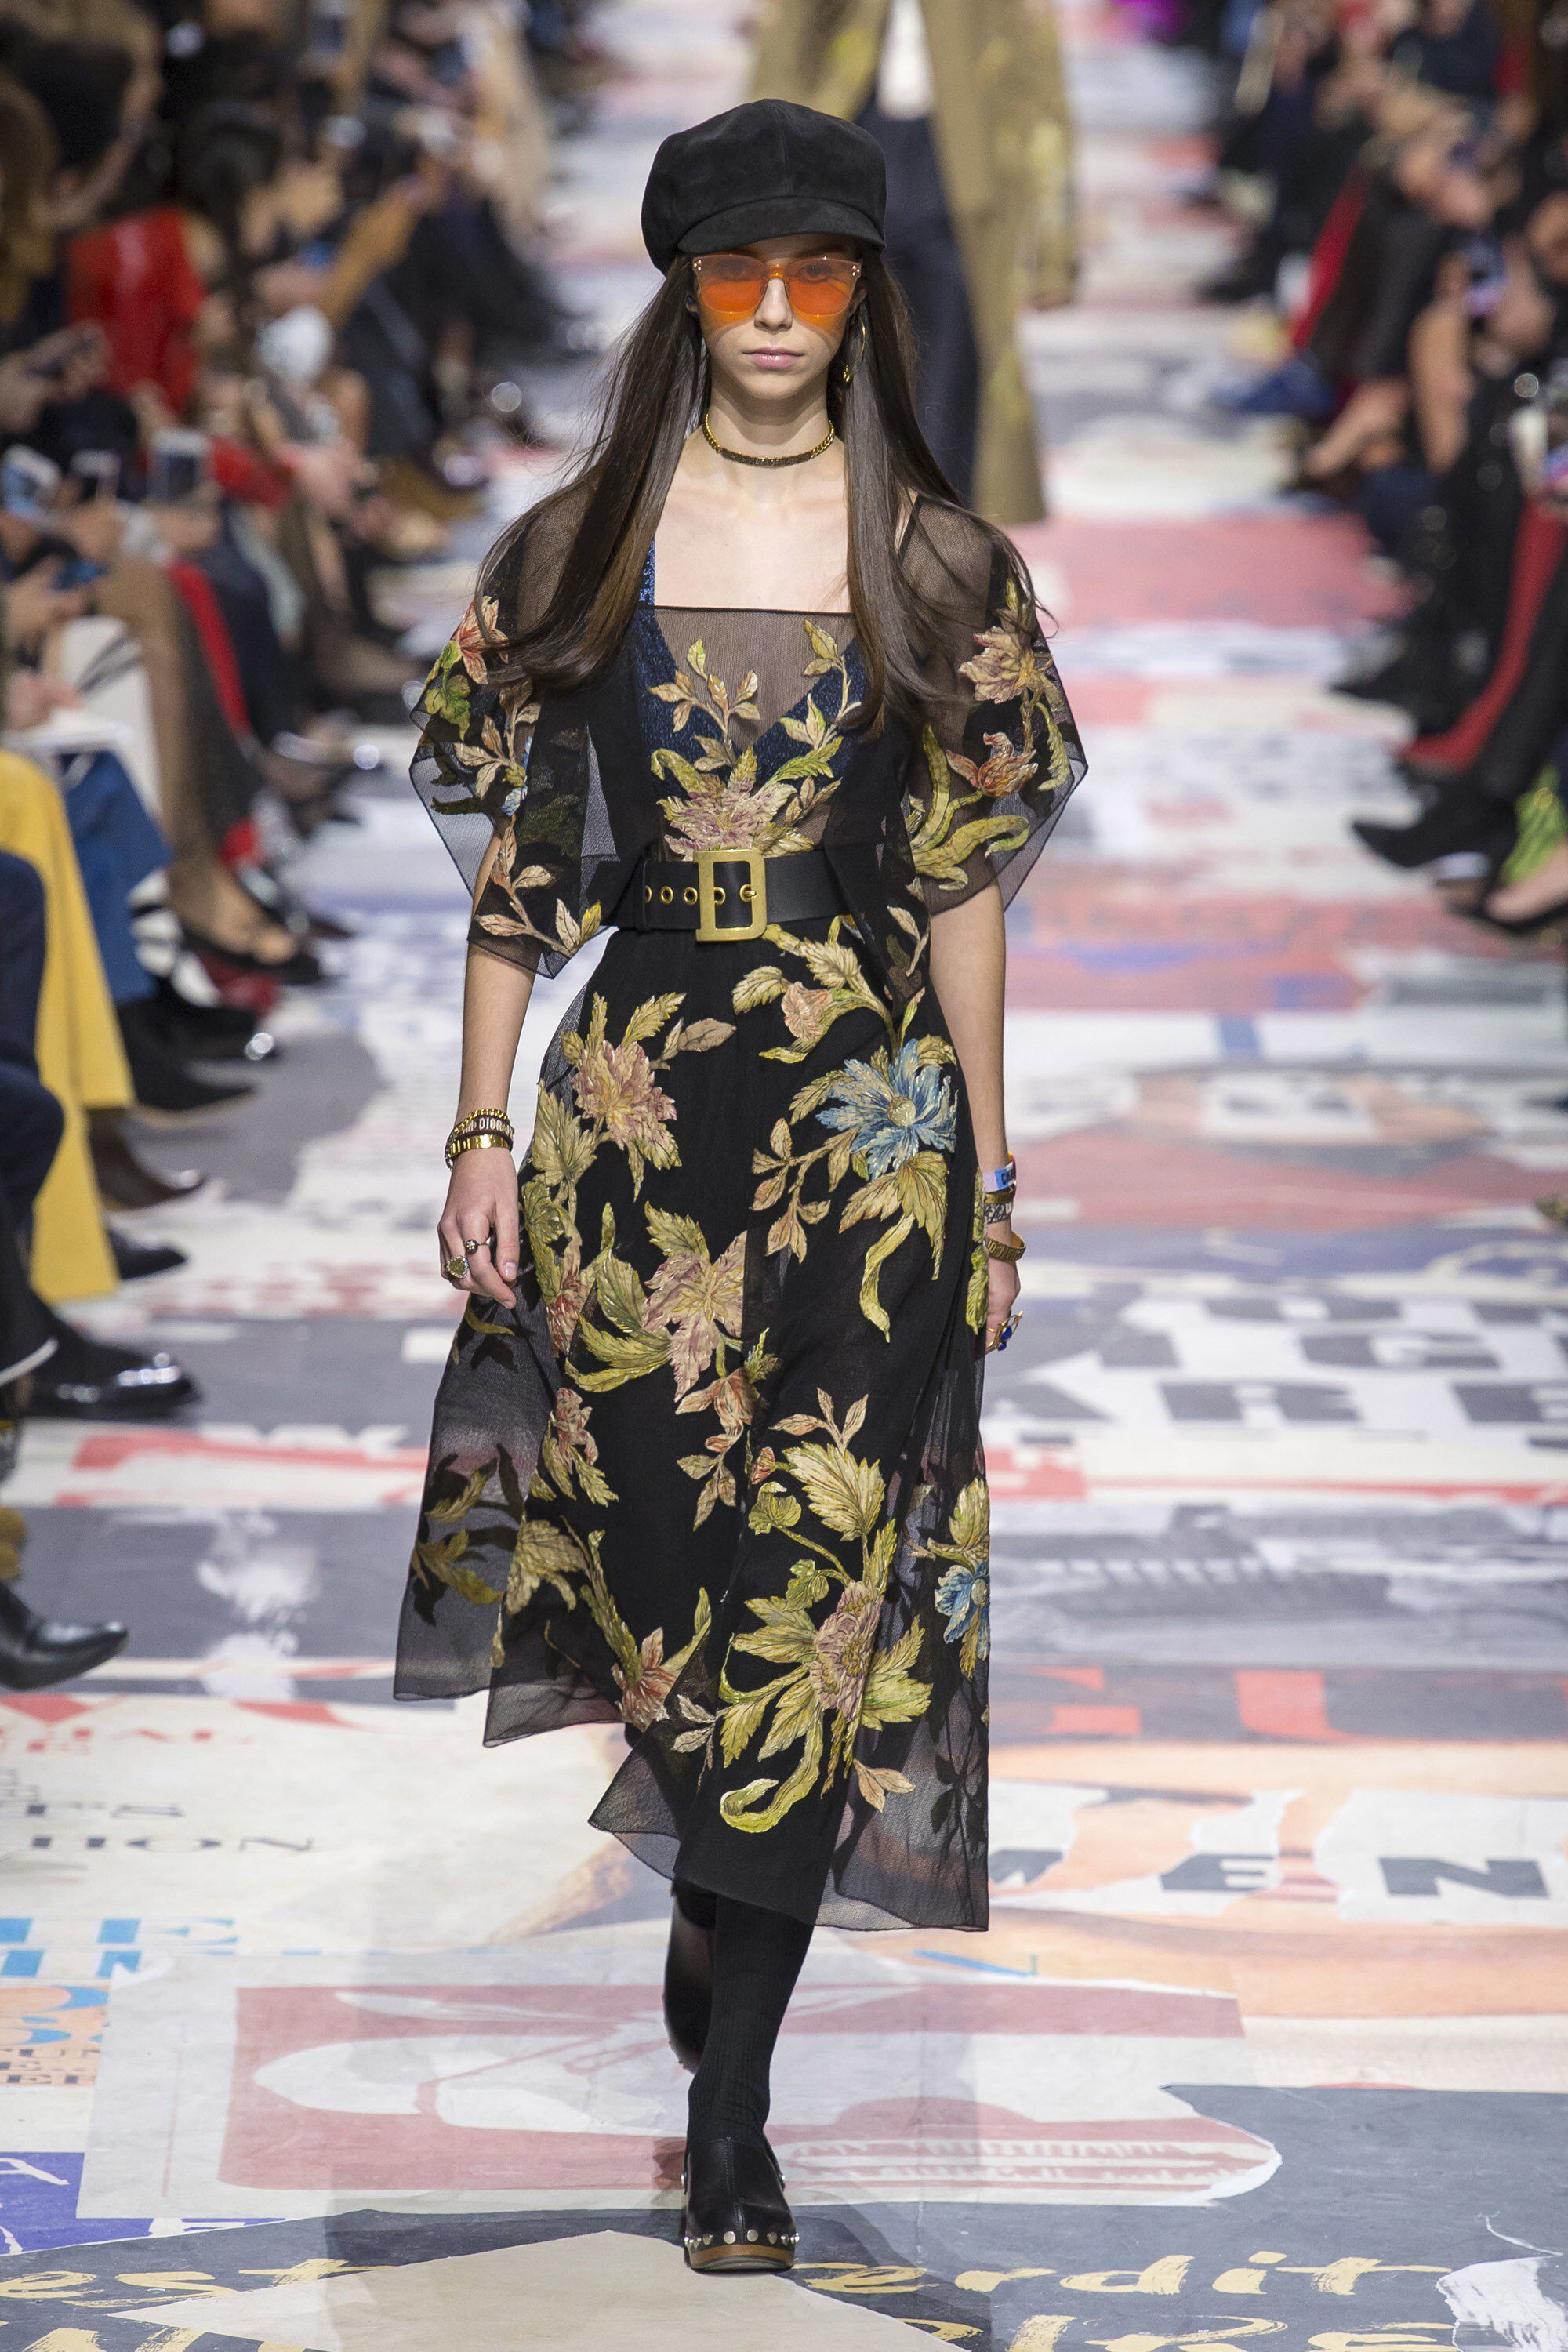 eb243c13f0b Flower Trend for Fall Winter 2018 2019 - Fashion Trends